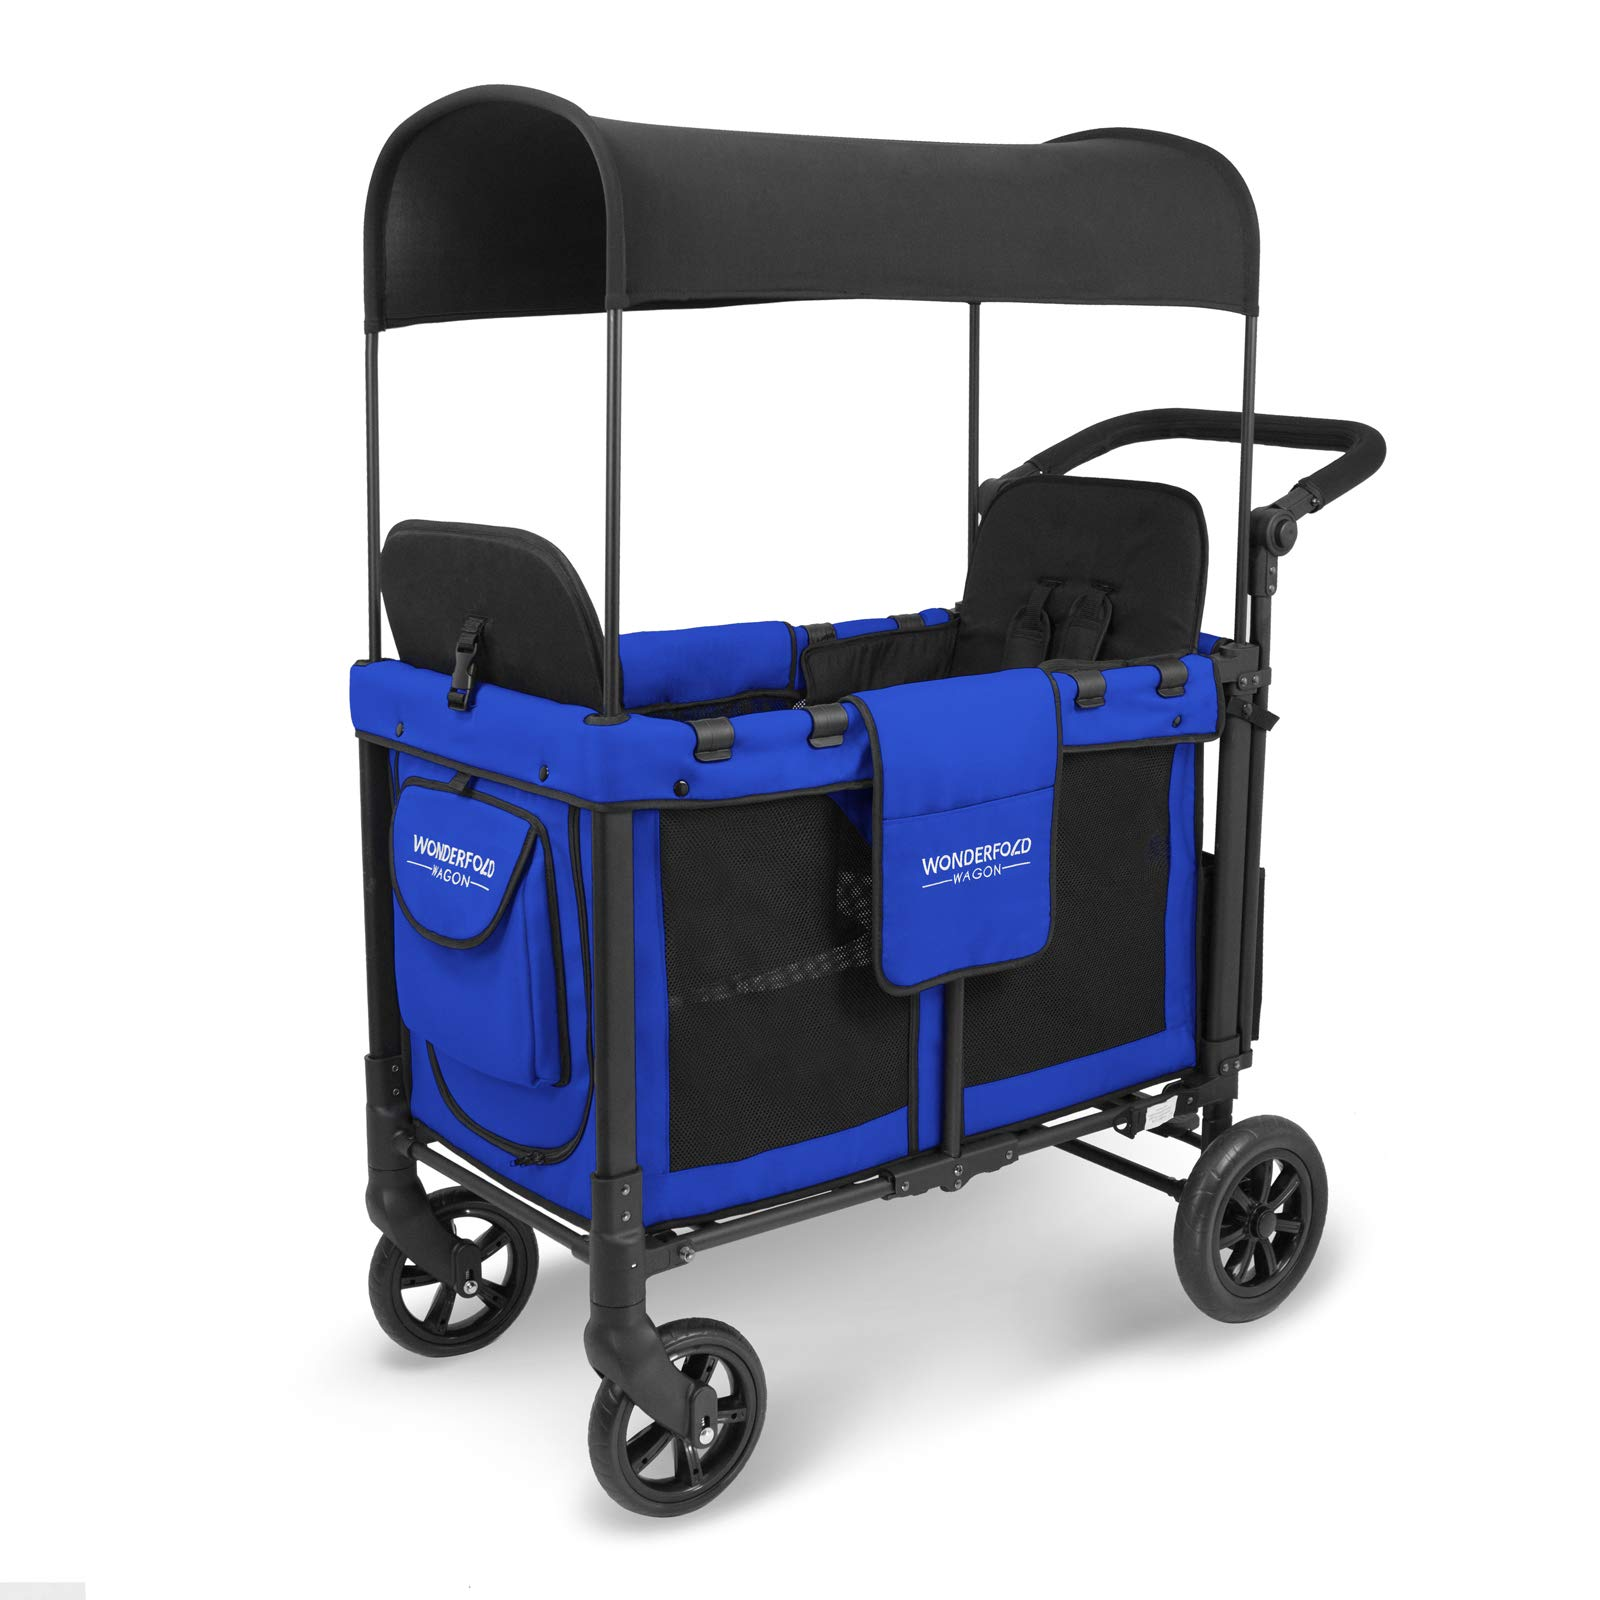 WonderFold Multi-Function Push 2 Passenger Double Folding Stroller, Adjustable Canopy & Removable Chair Seat Up To 2 Toddlers (Royal Blue) by WonderFold